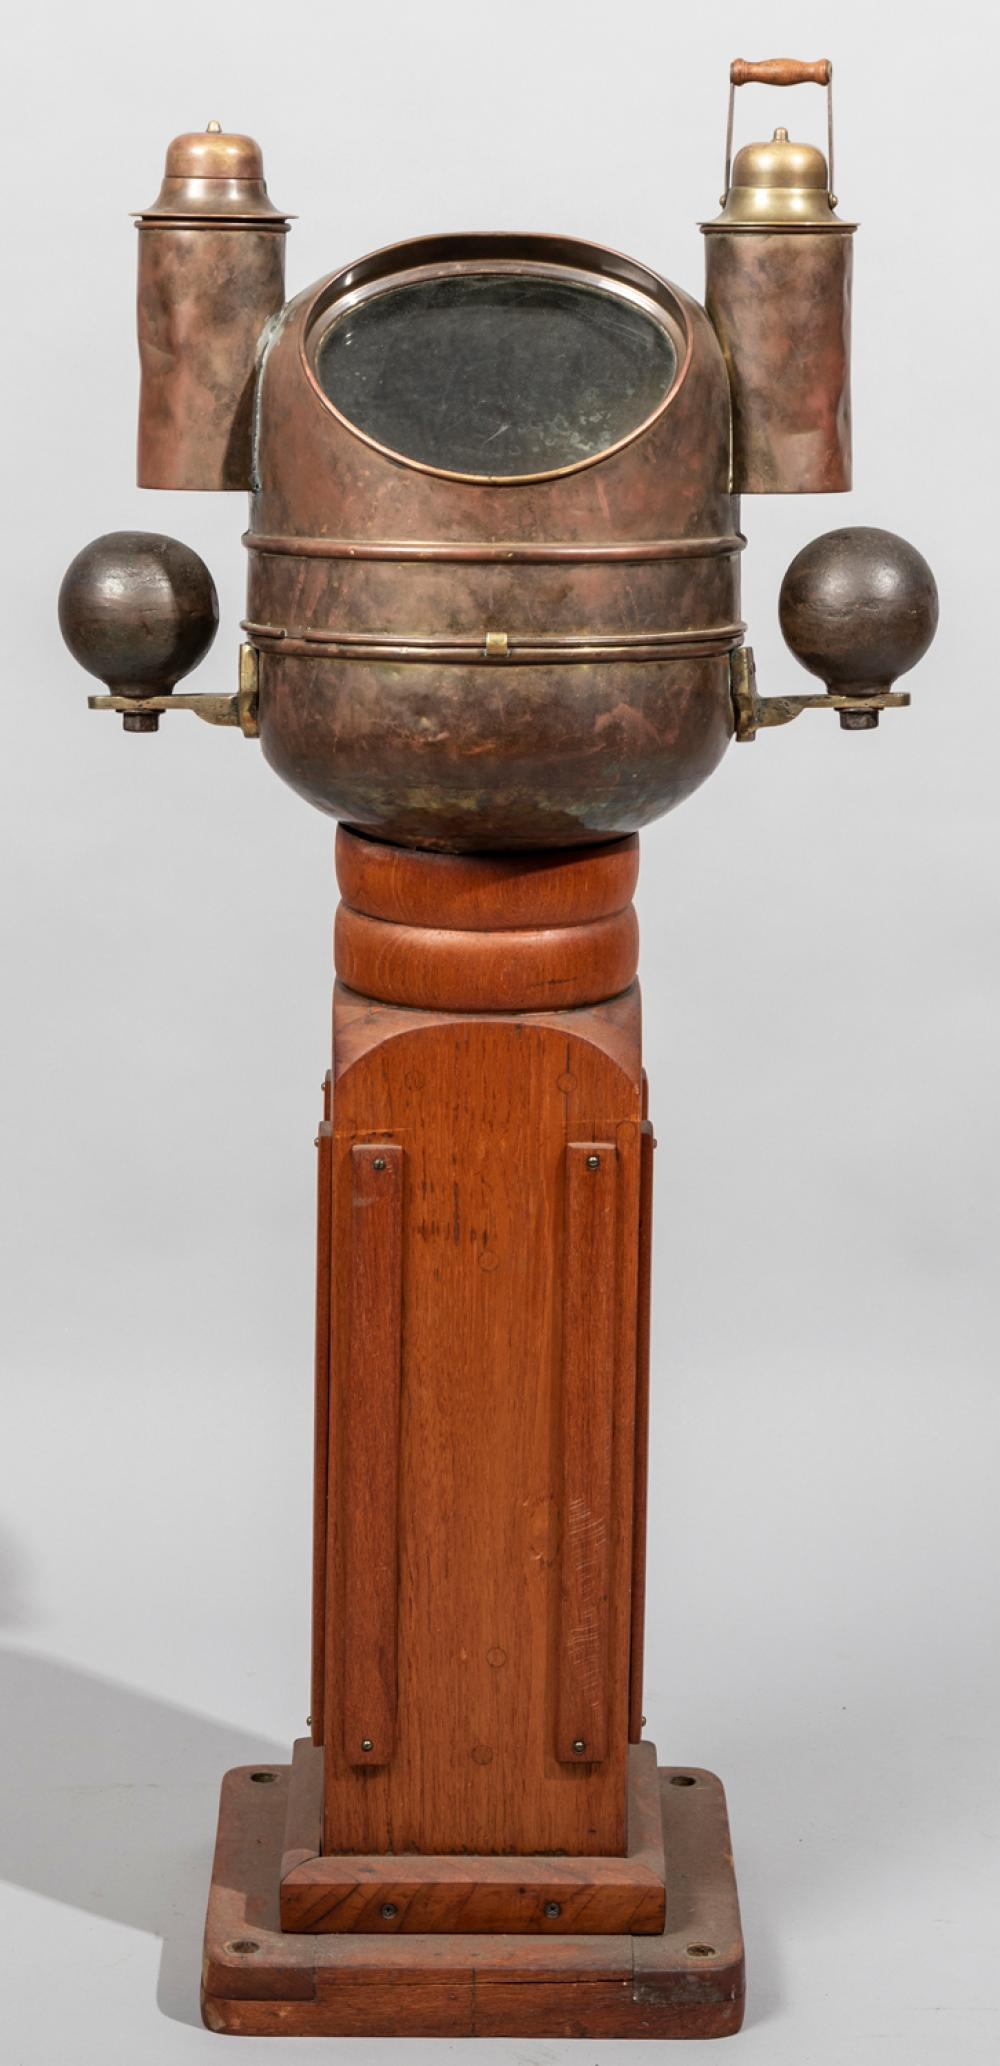 Antique Nautical Binnacle on Wooden Stand